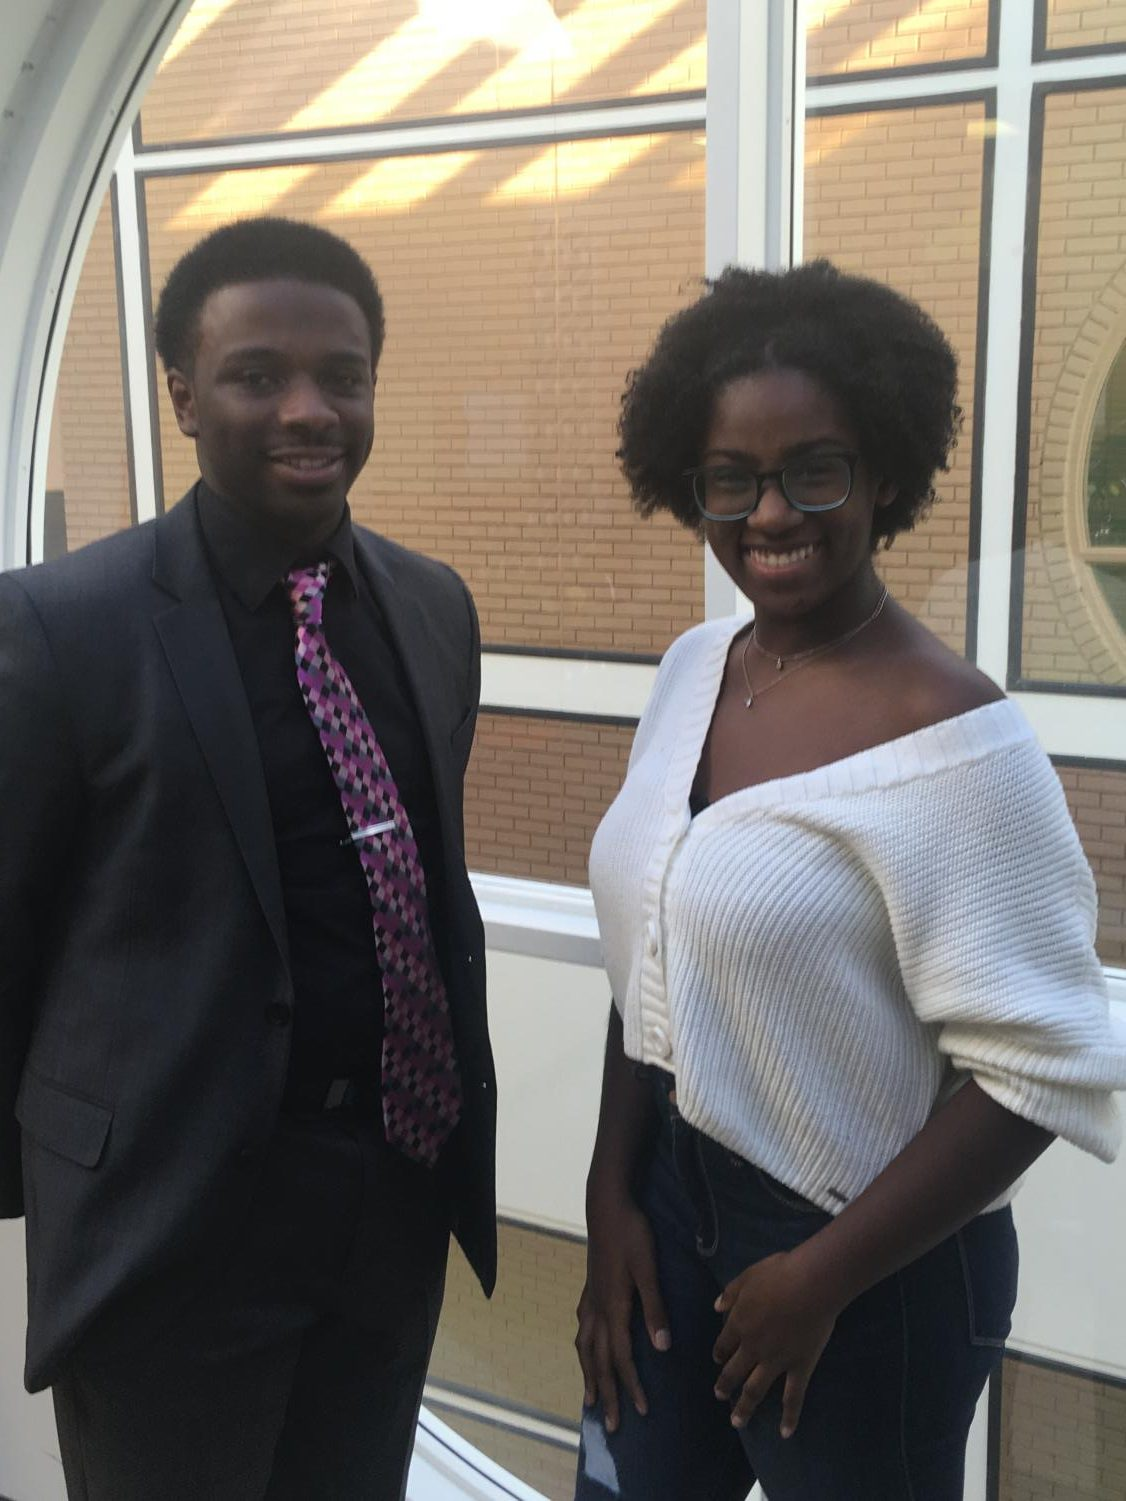 Co-presidents Djimon Lewis and Taria Murphy of the Black Student Alliance at College of DuPage